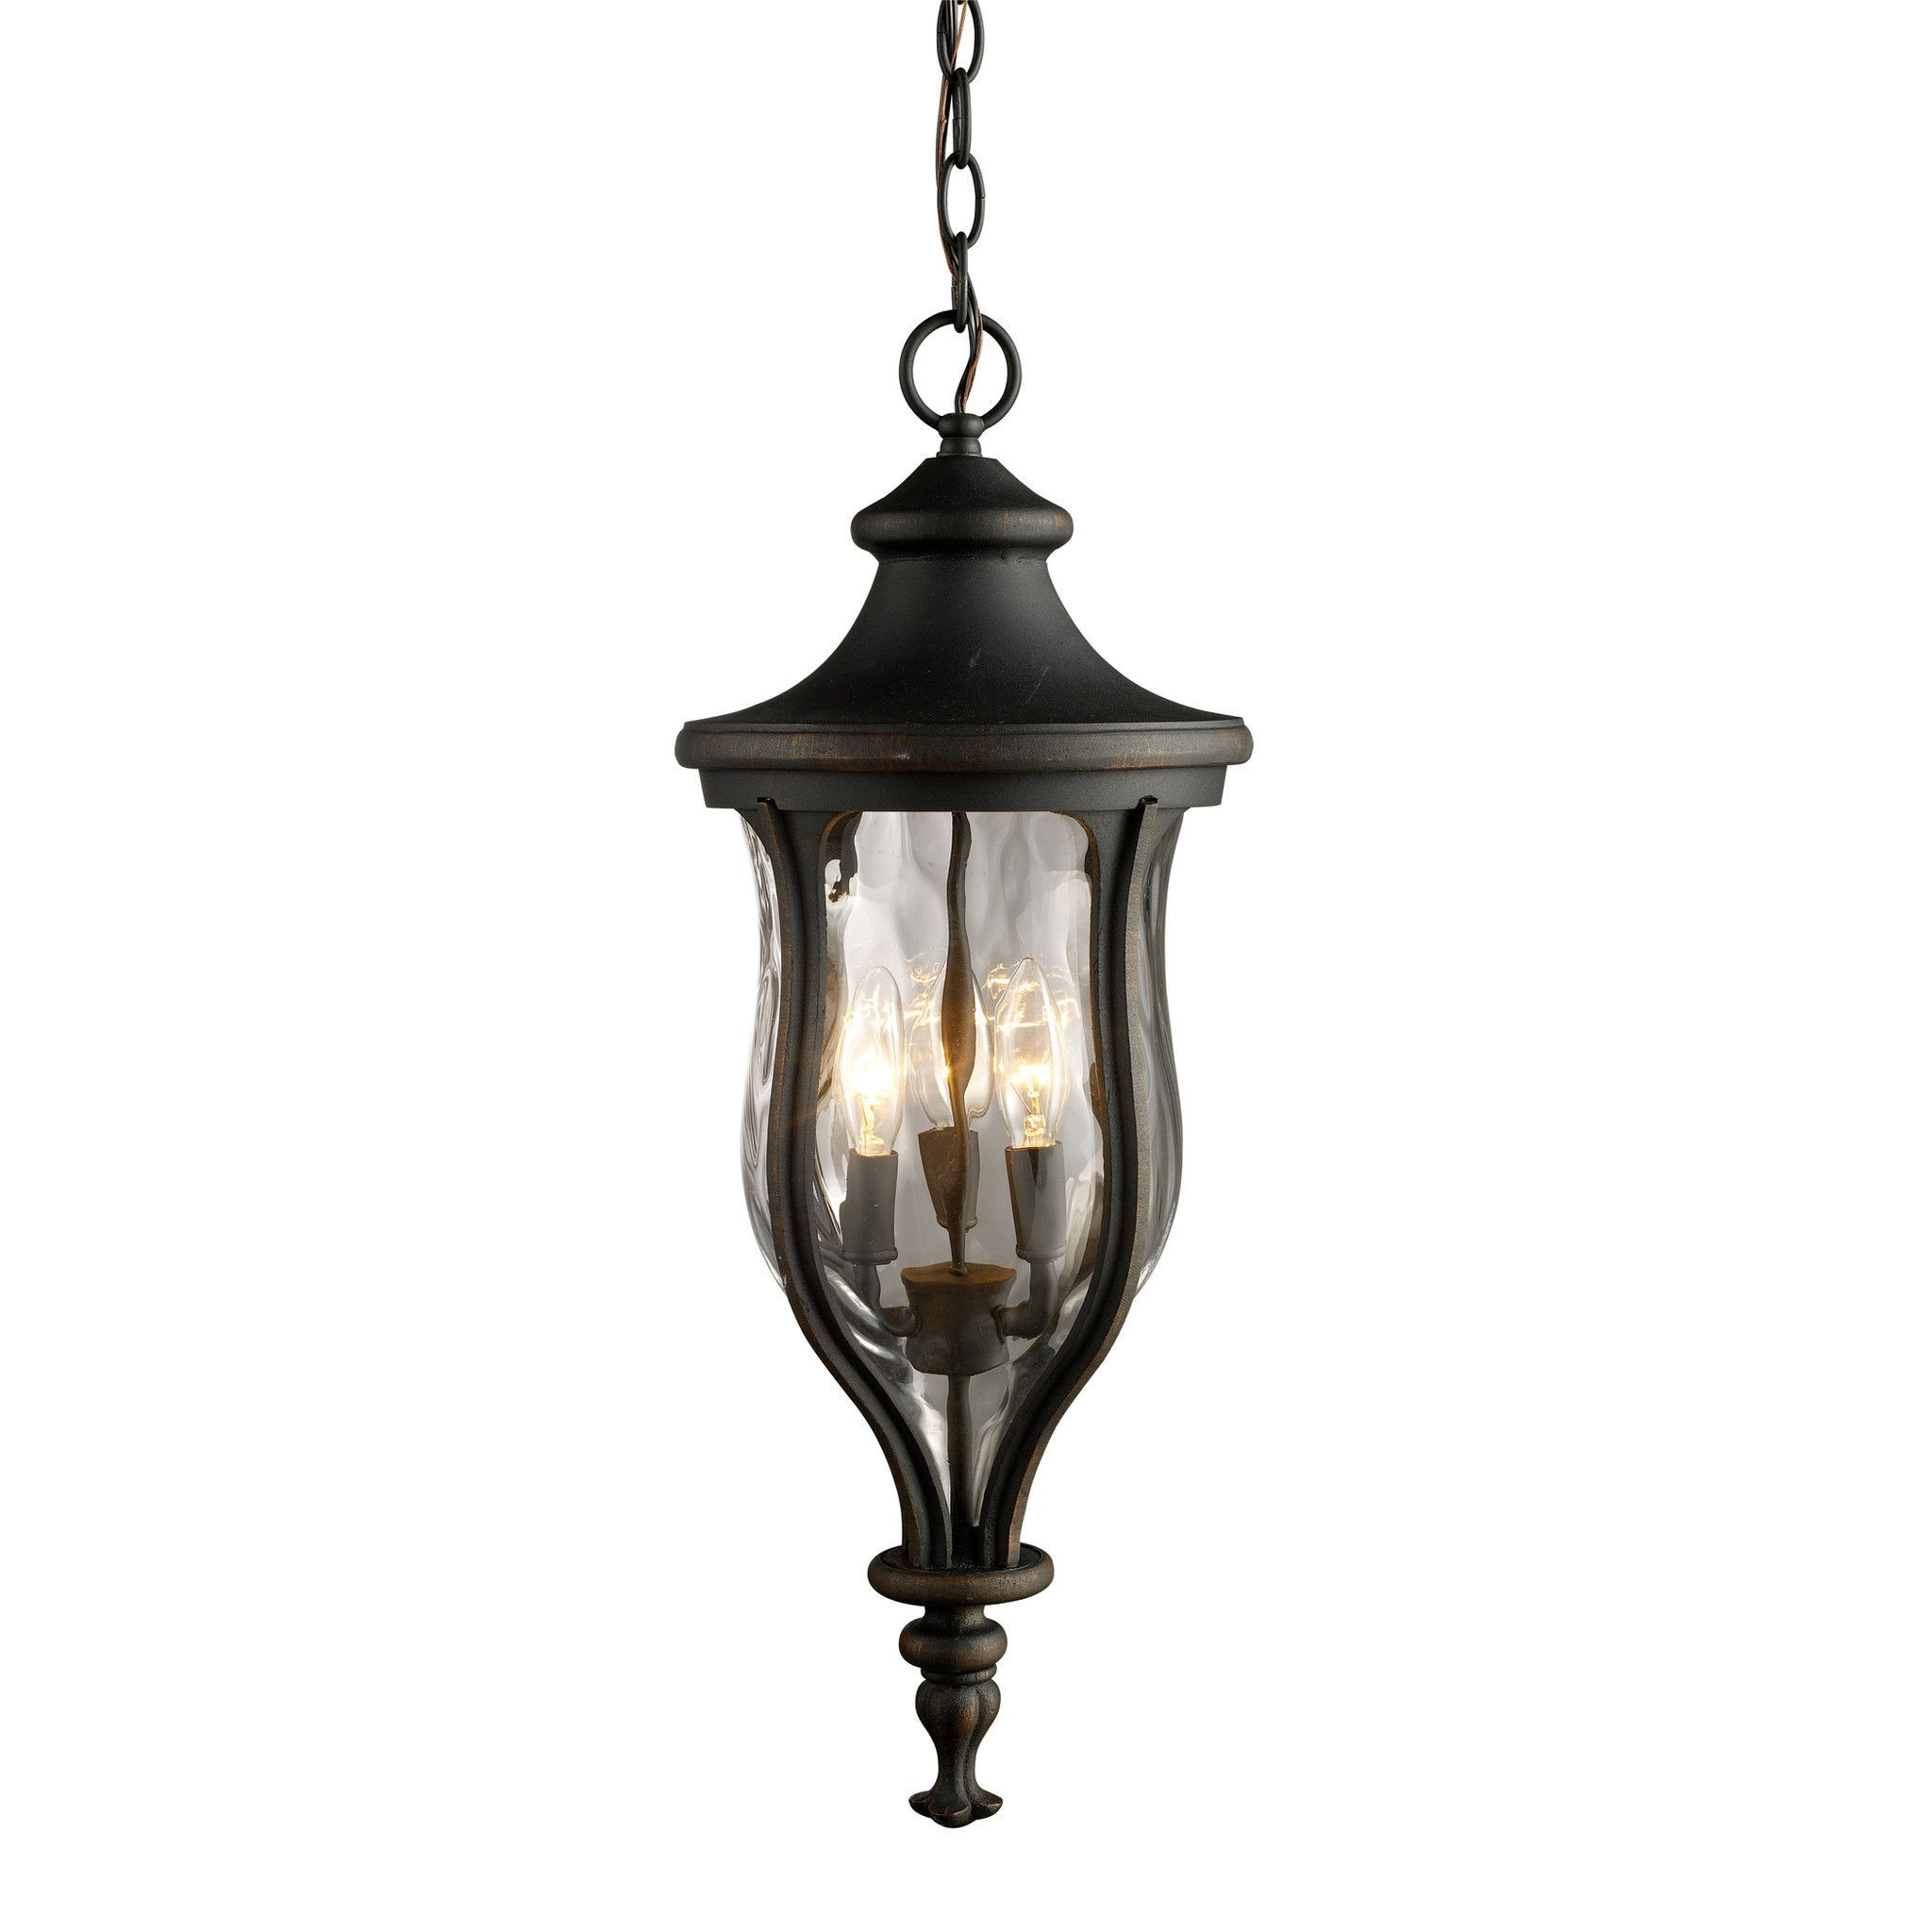 hanging interesting pendant lantern lighting light black outdoor remarkable lights